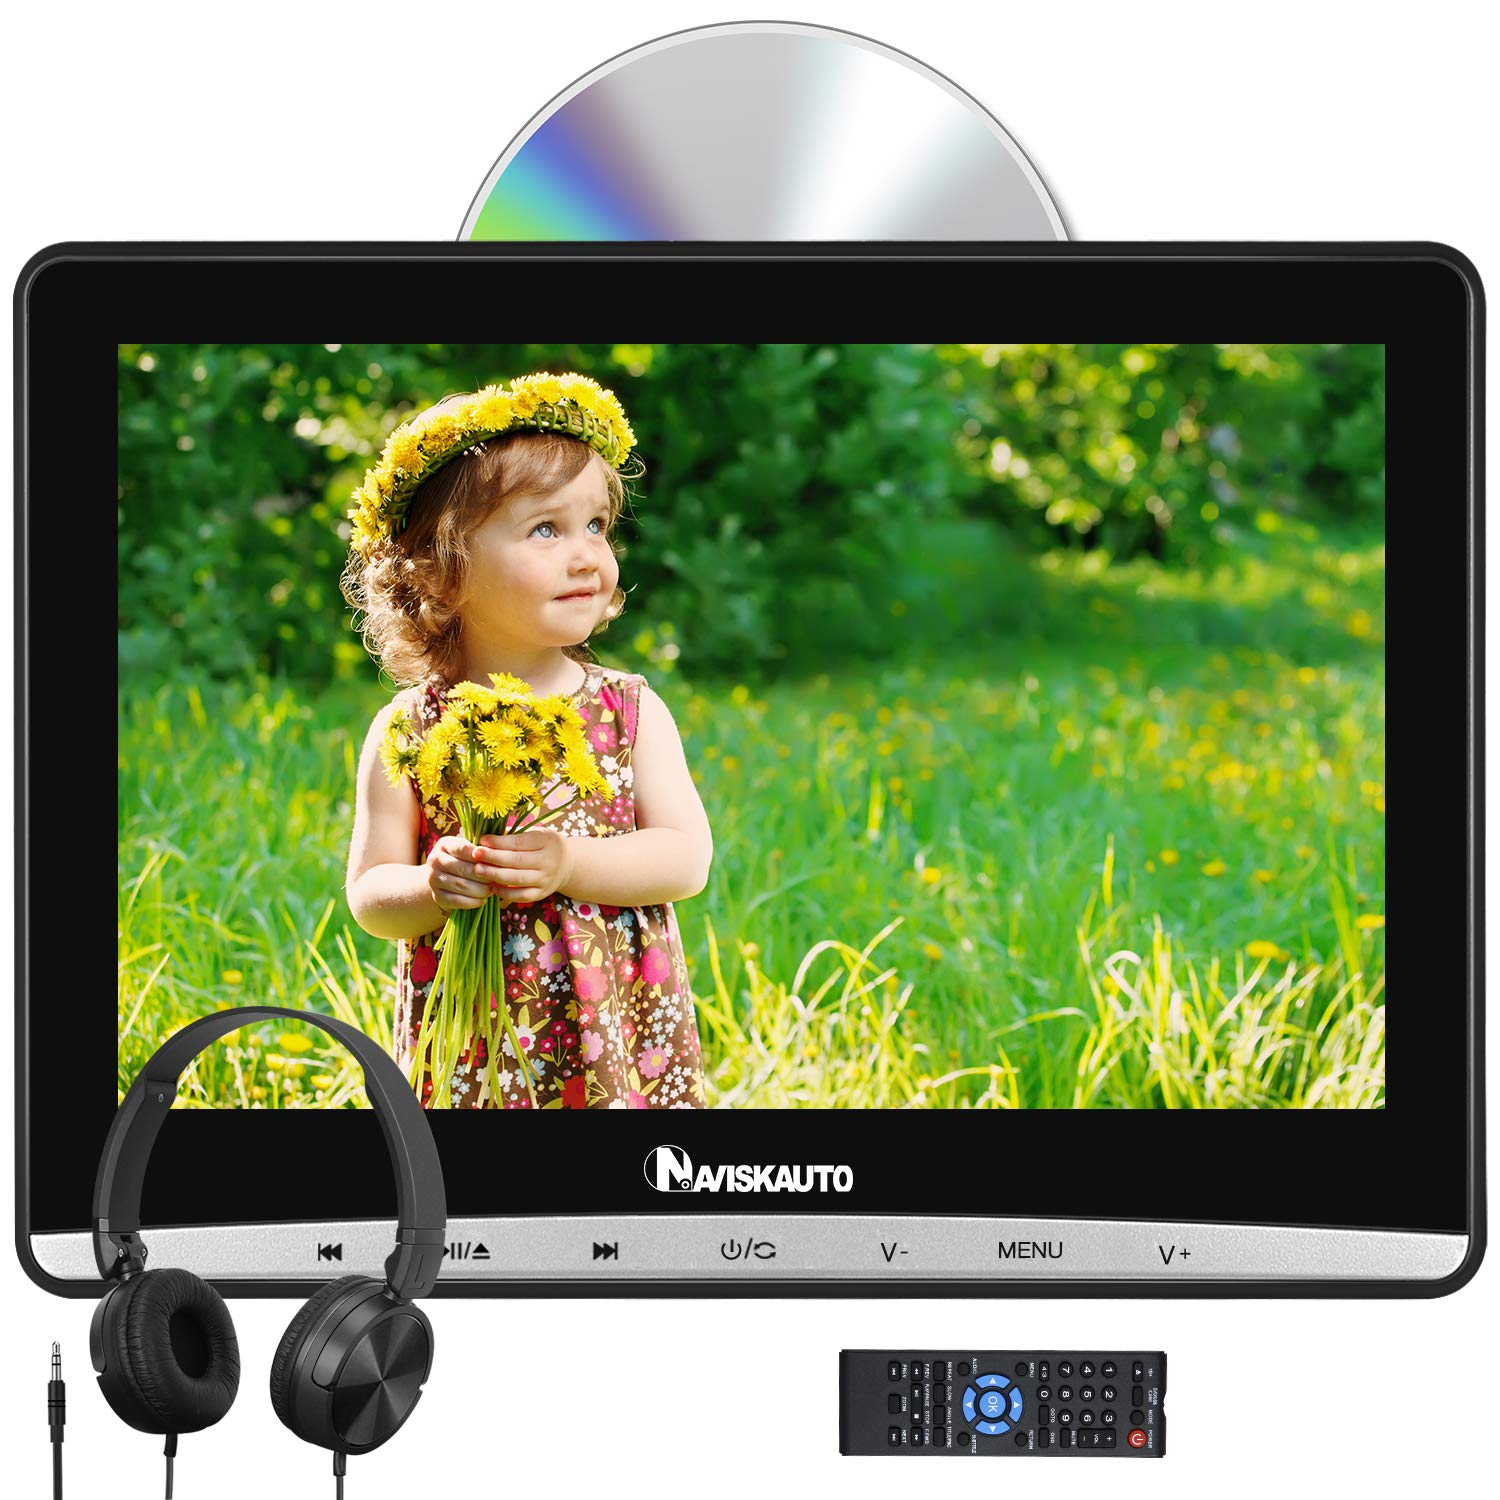 NAVISKAUTO 12'' Car DVD Player with 1366x768 HD Screen, Headphone and Inhalation Drive Support Sync Screen, AV in & Out, Resume, Region Free